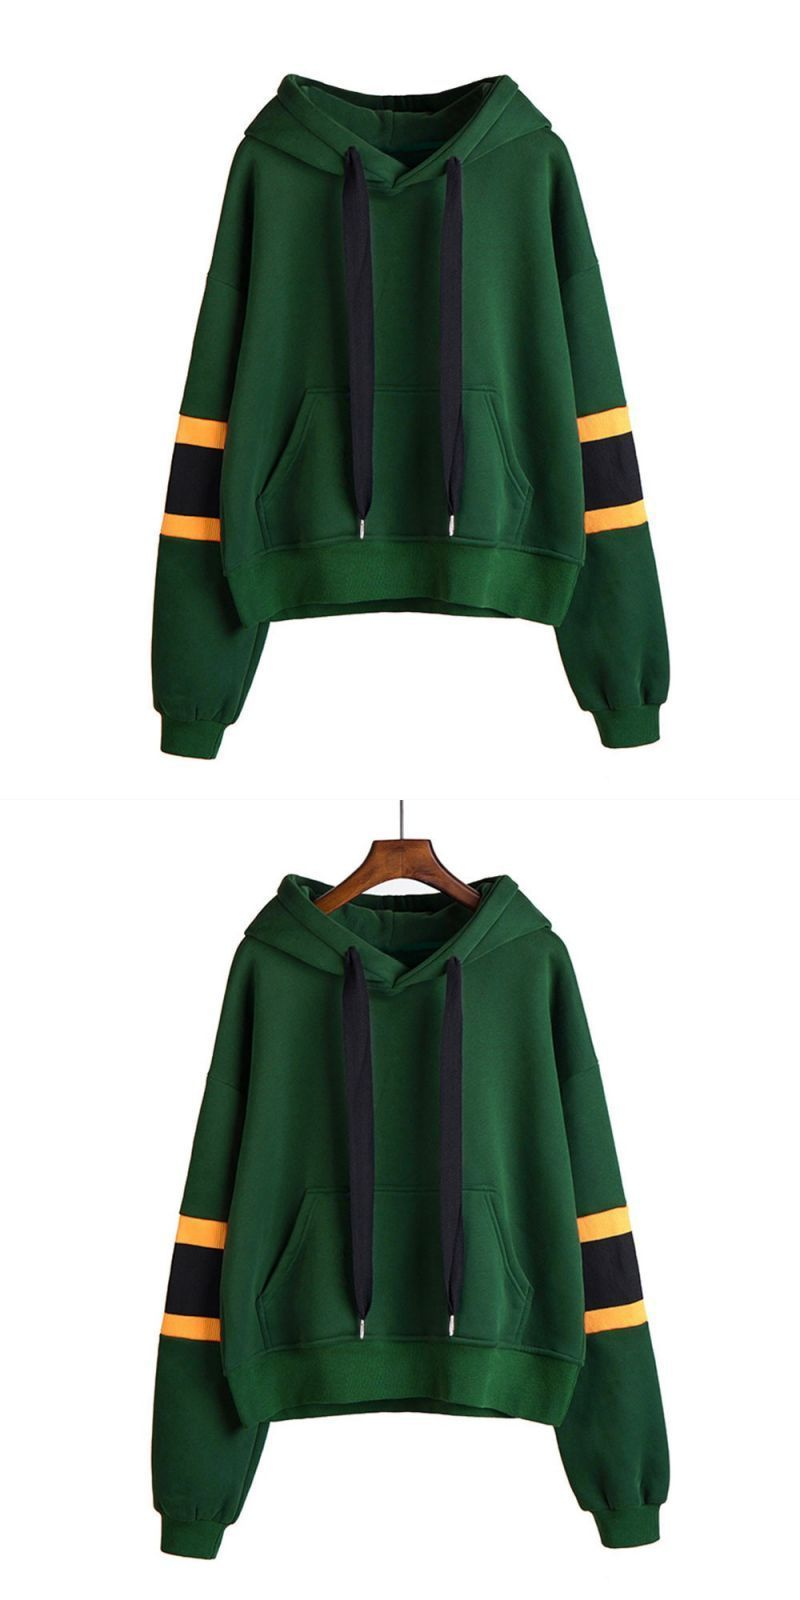 f186a67b Bts striped hoodies harajuku new fashion green autumn winner womens long  sleeve hoodie sweatshirt hooded pullover